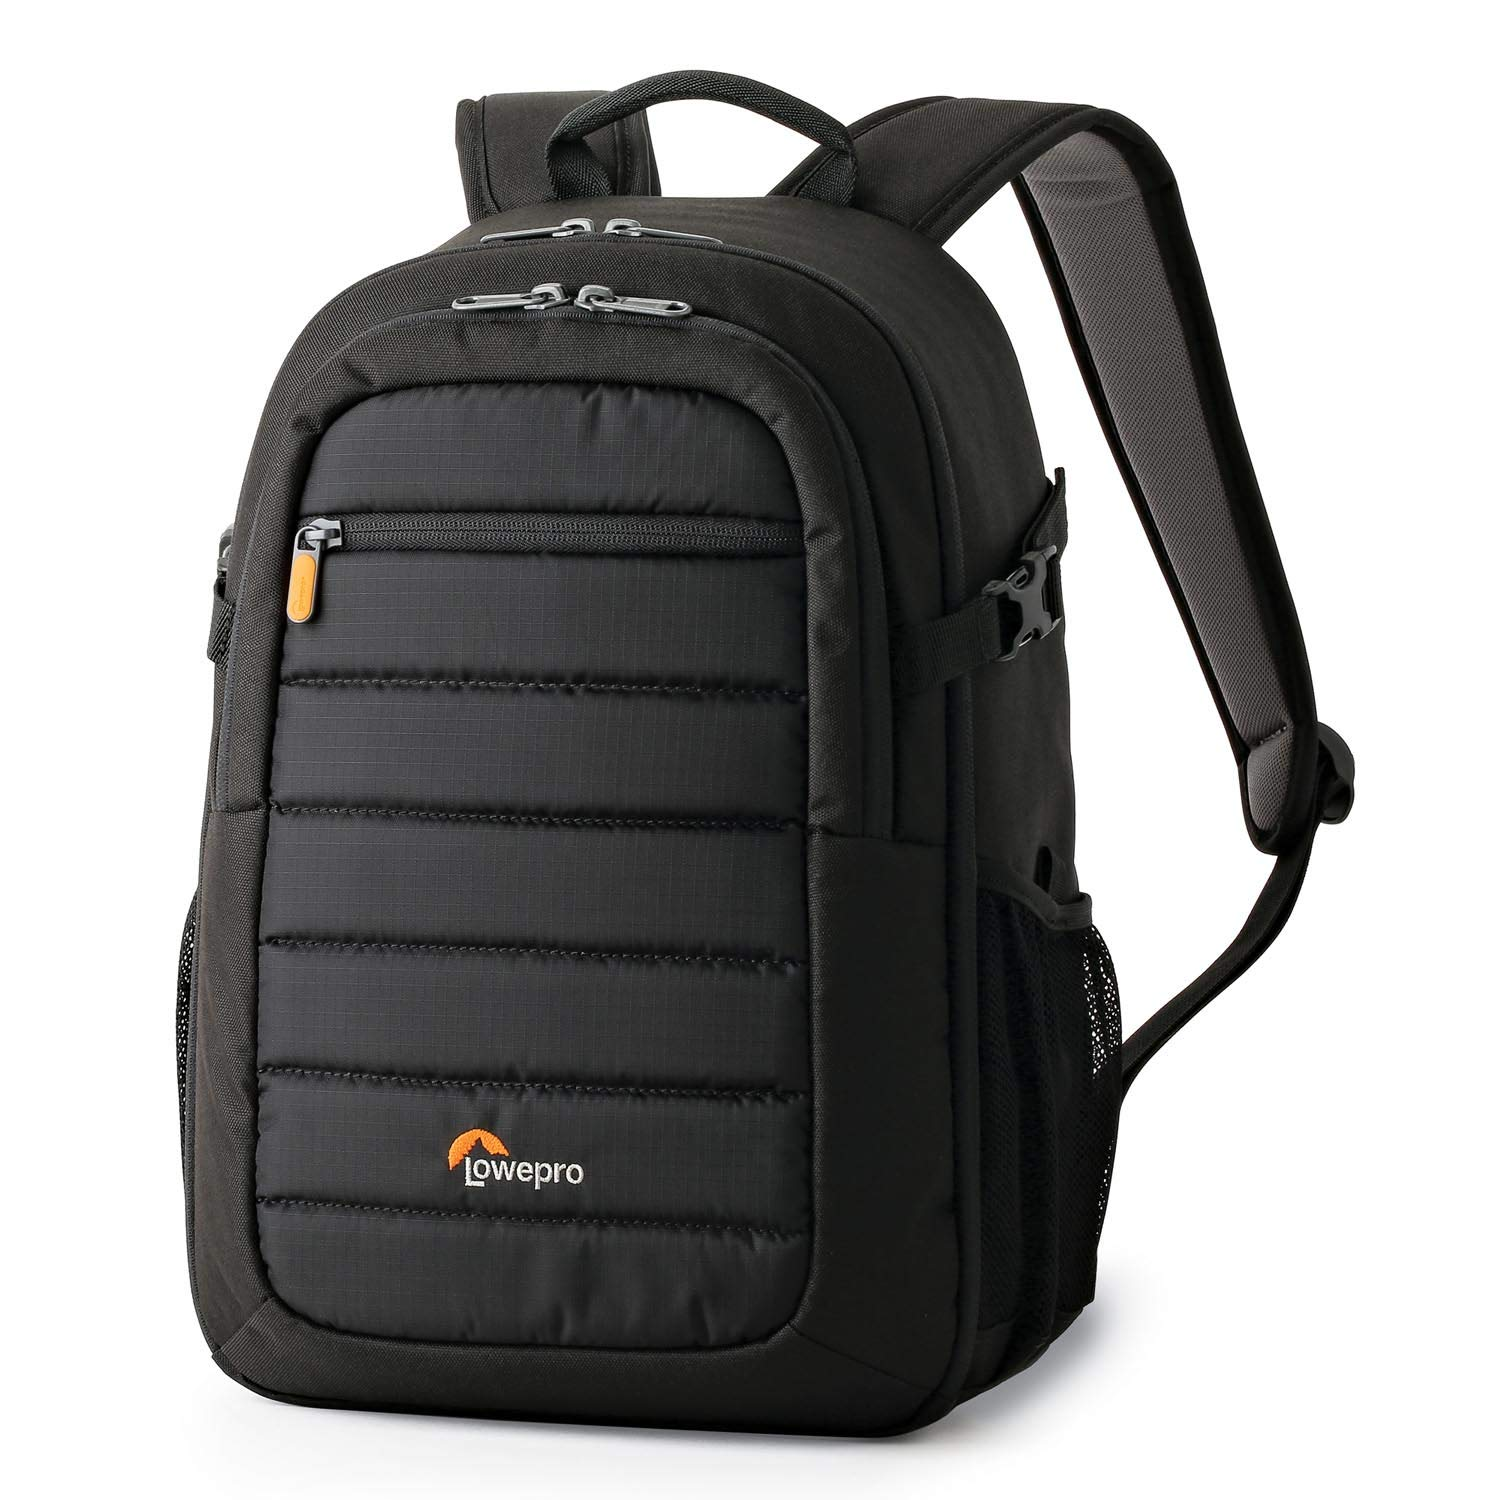 c82319241a5 Amazon.com : LowePro Tahoe BP 150. Lightweight Compact Camera Backpack for  Cameras and DJI Spark Drone (Black). : Camera & Photo